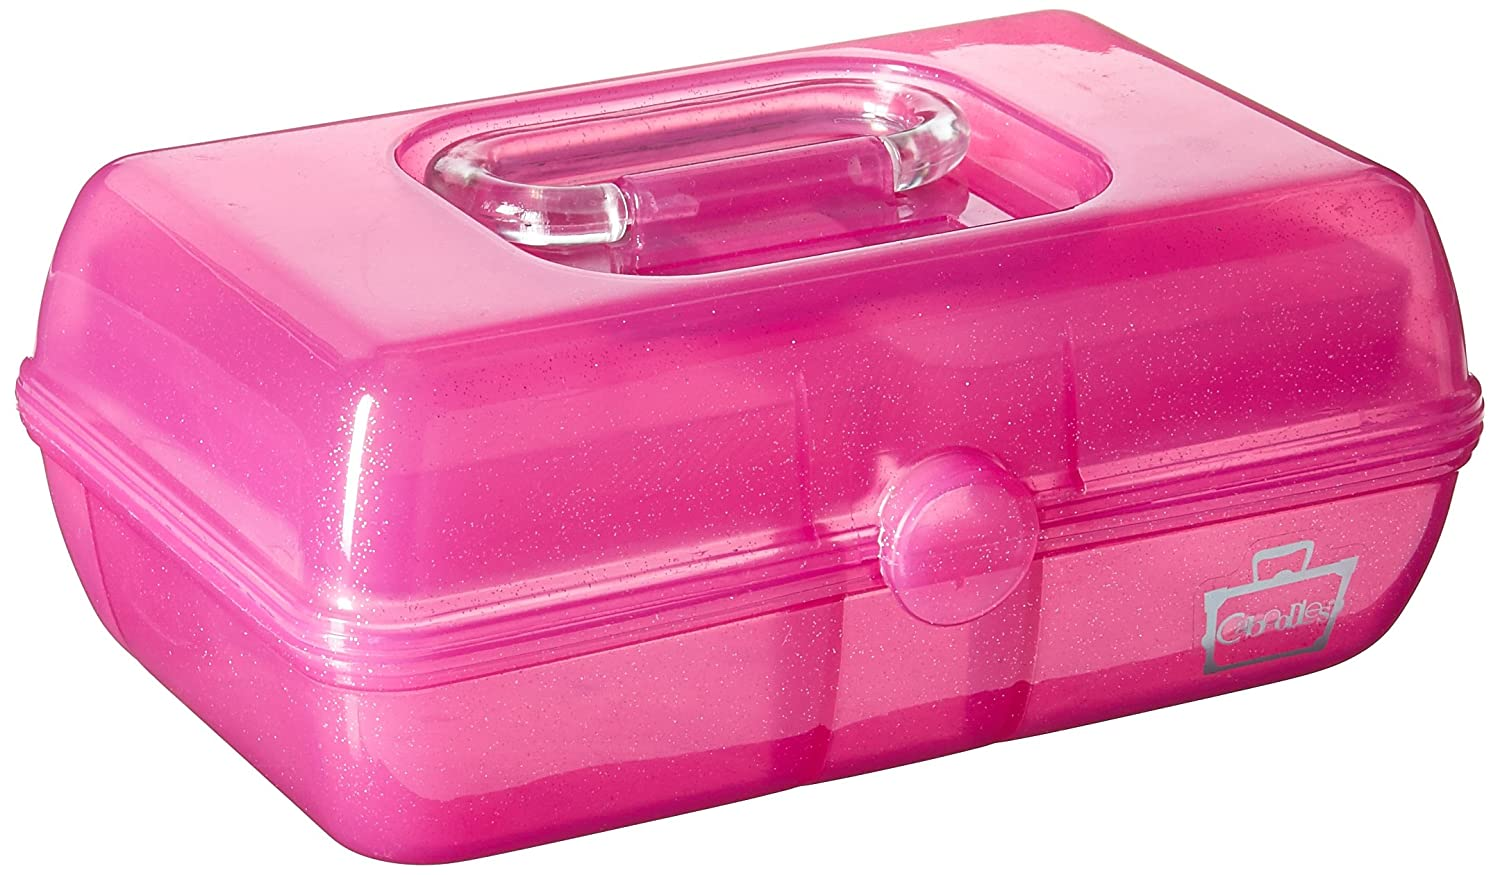 Amazon.com: Caboodles Pretty en Petite, color fucsia: Beauty